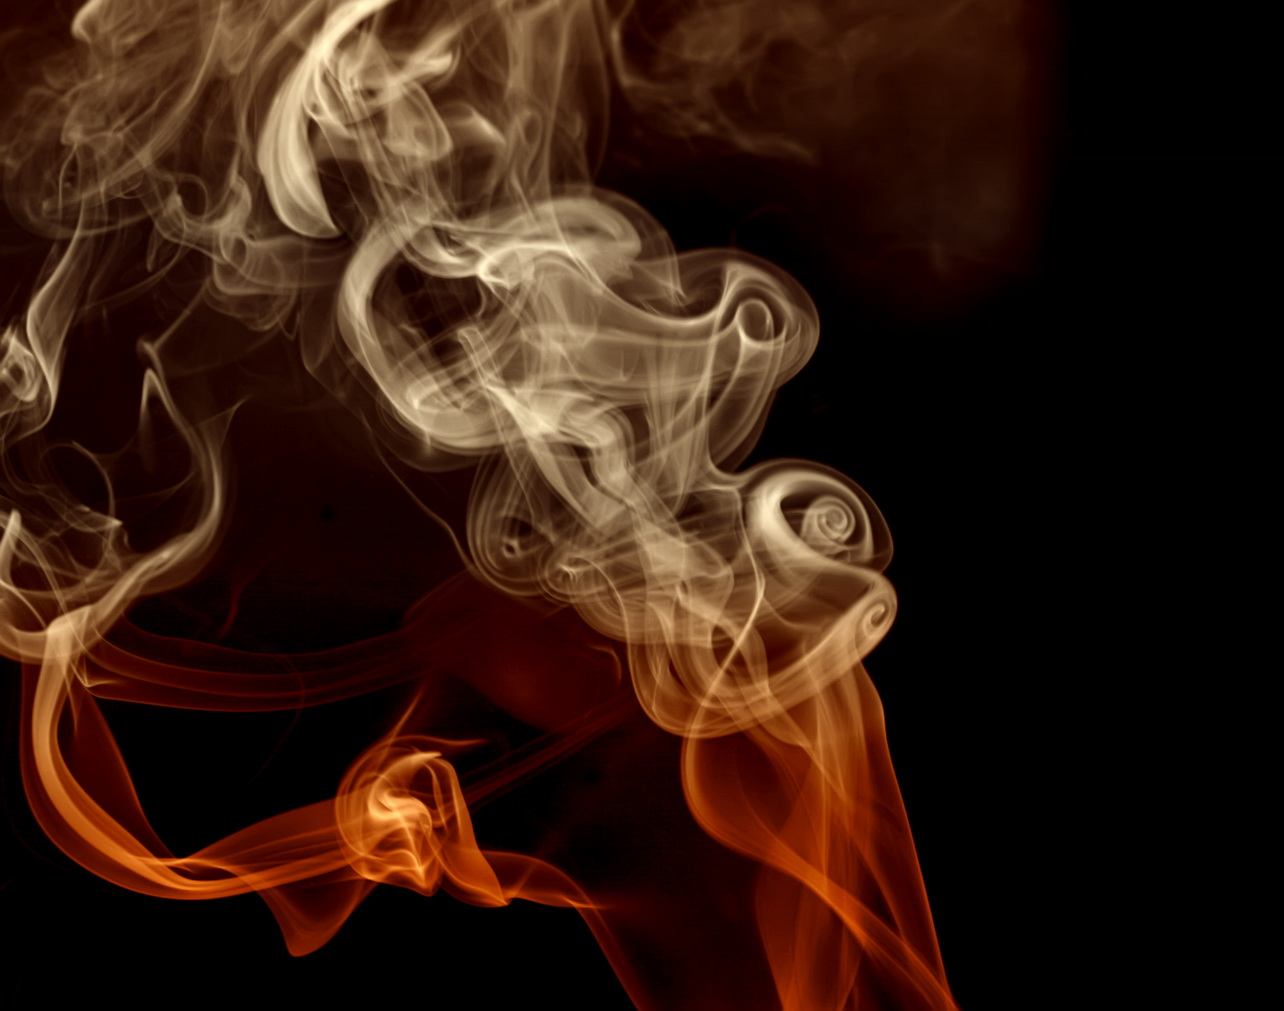 Smoke, Abstract, Flow, Ideas, Image, HQ Photo